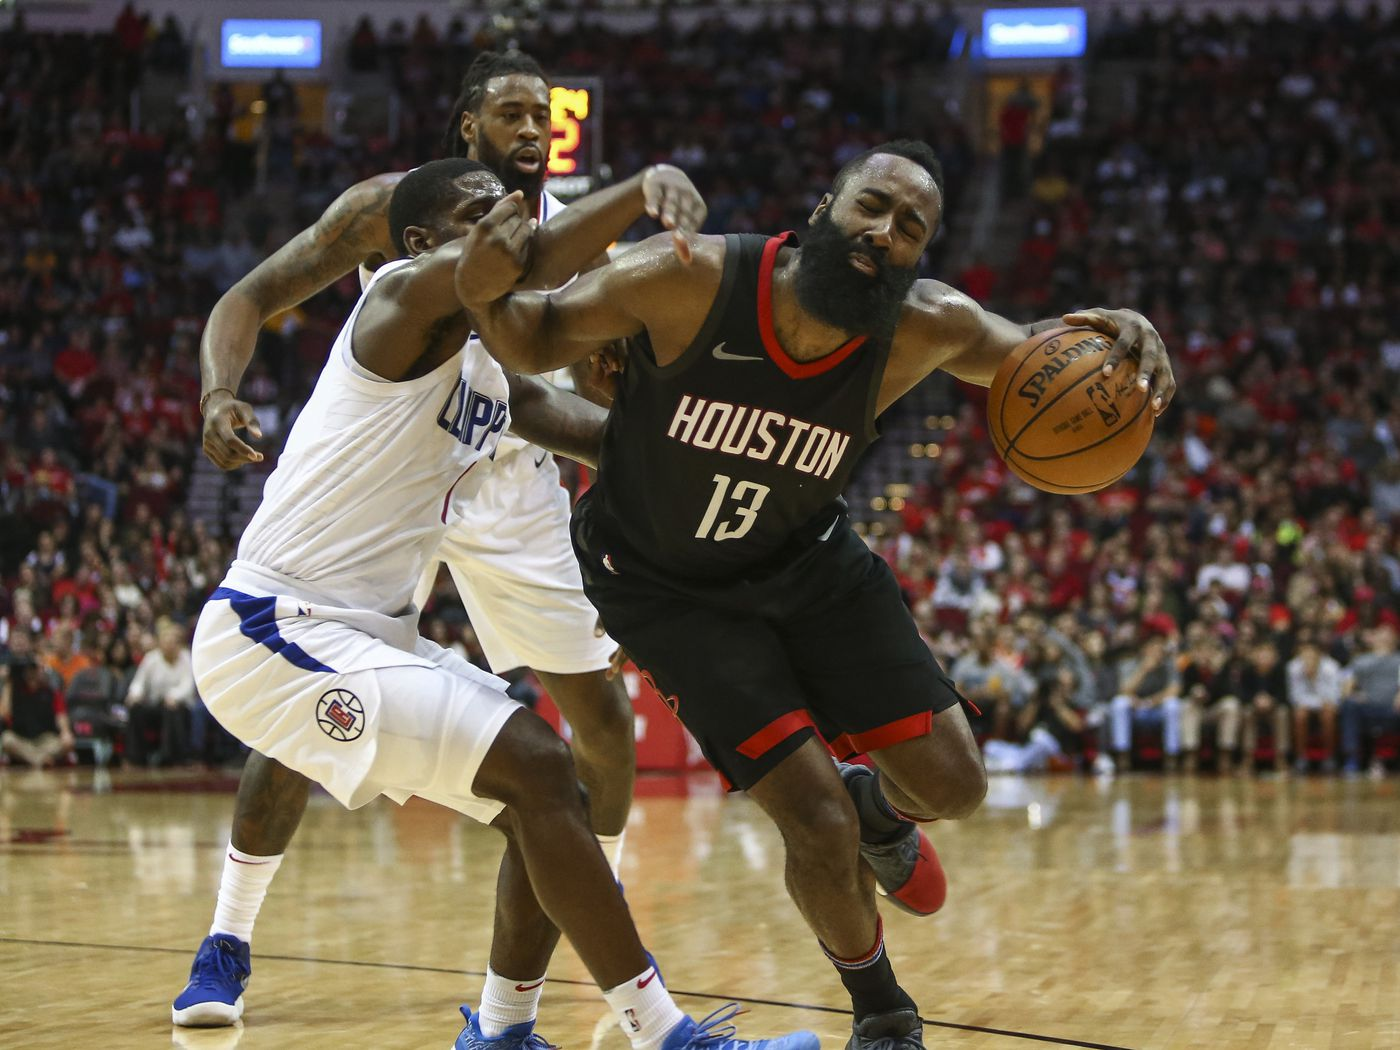 664f2e8a883f Rockets file official protest over Clippers game - The Dream Shake